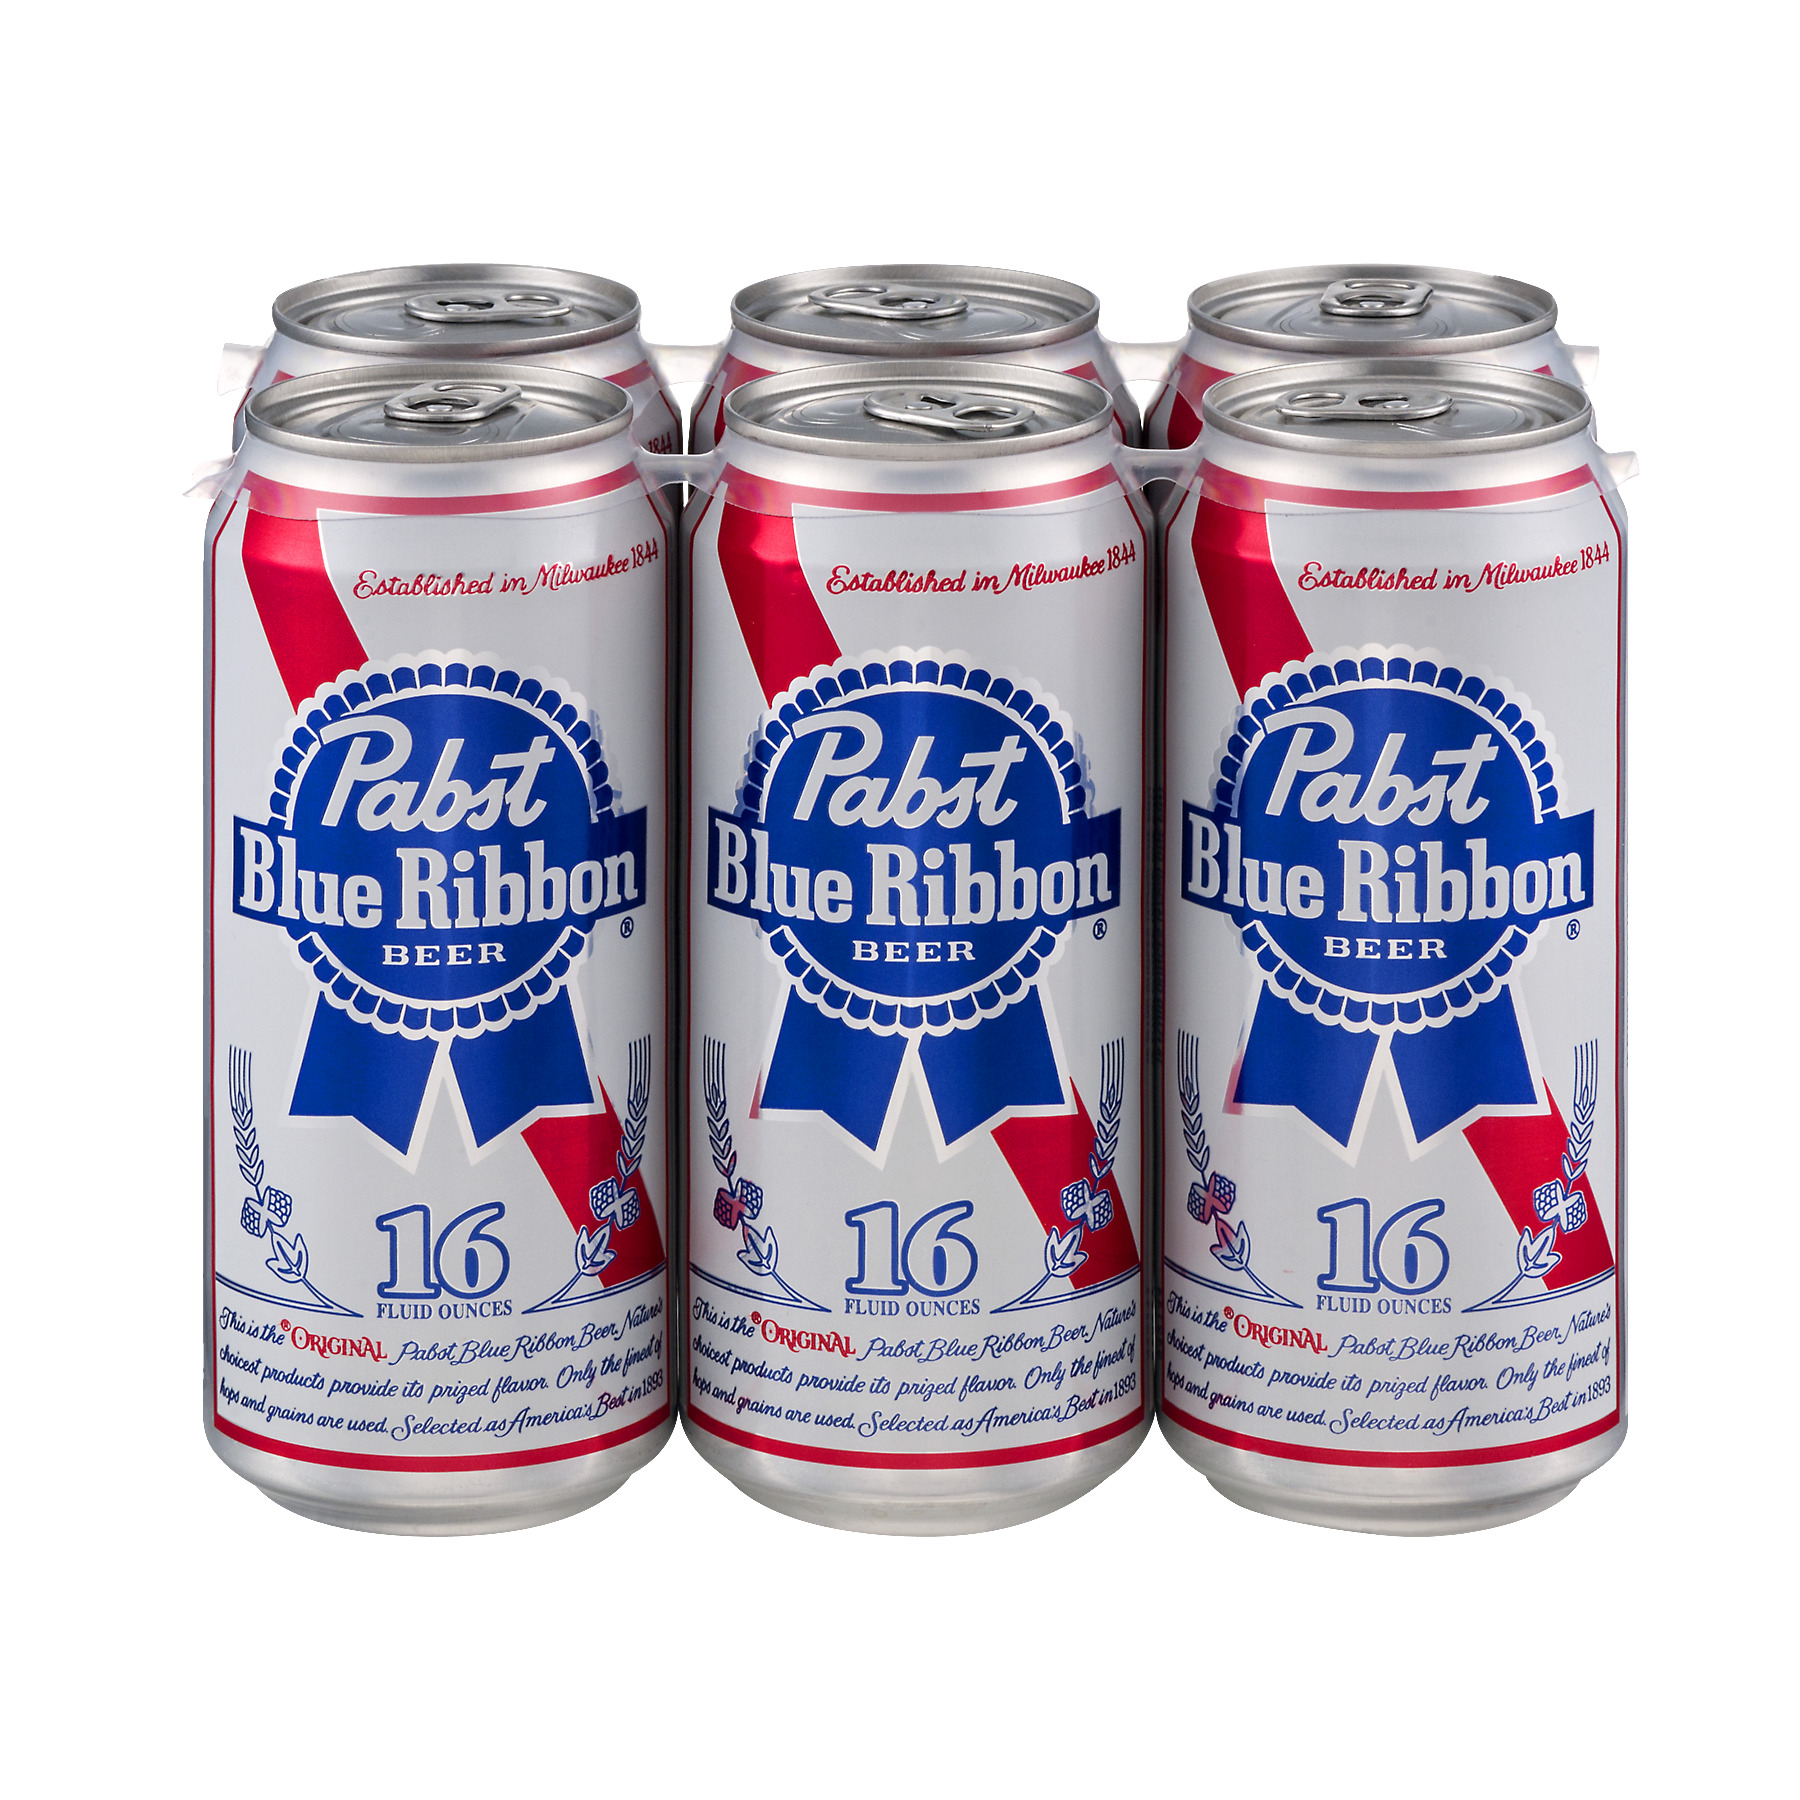 Pabst Blue Ribbon Beer 6 pk 16 fl oz Cans